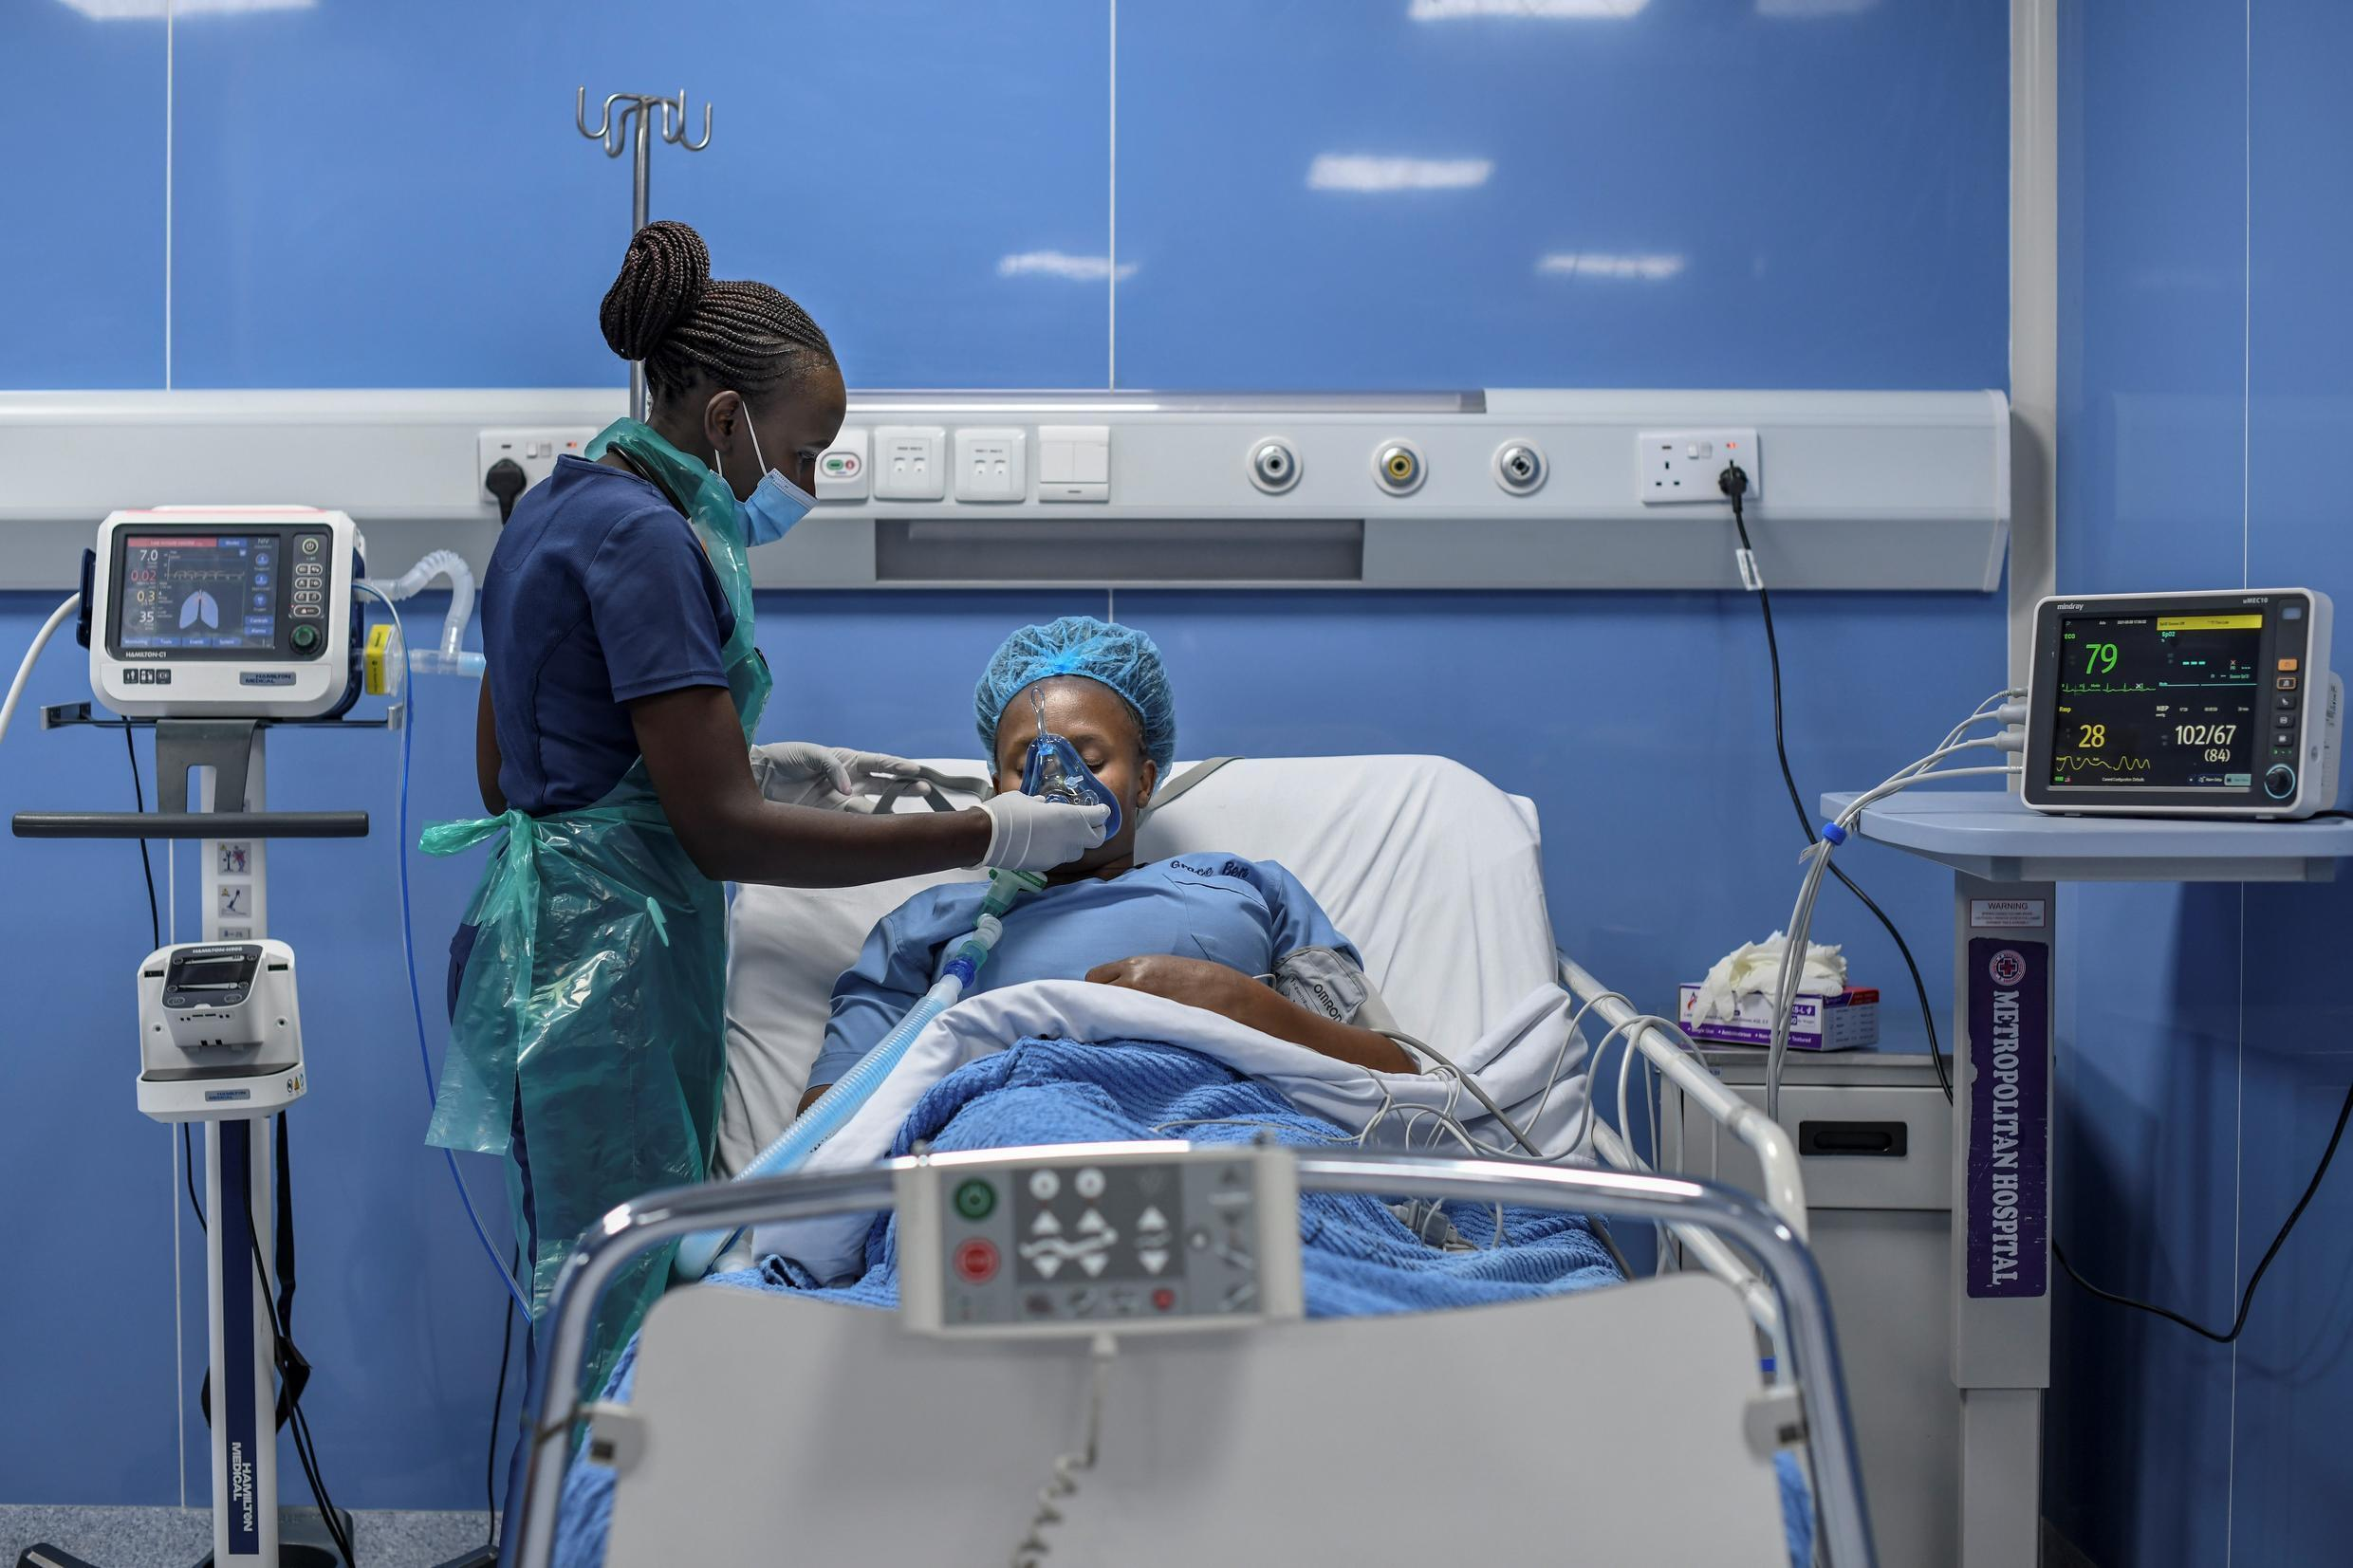 Kenya's hospitals have been scrambling to increase supplies of oxygen fearing the nightmare scenario currently unfolding in India